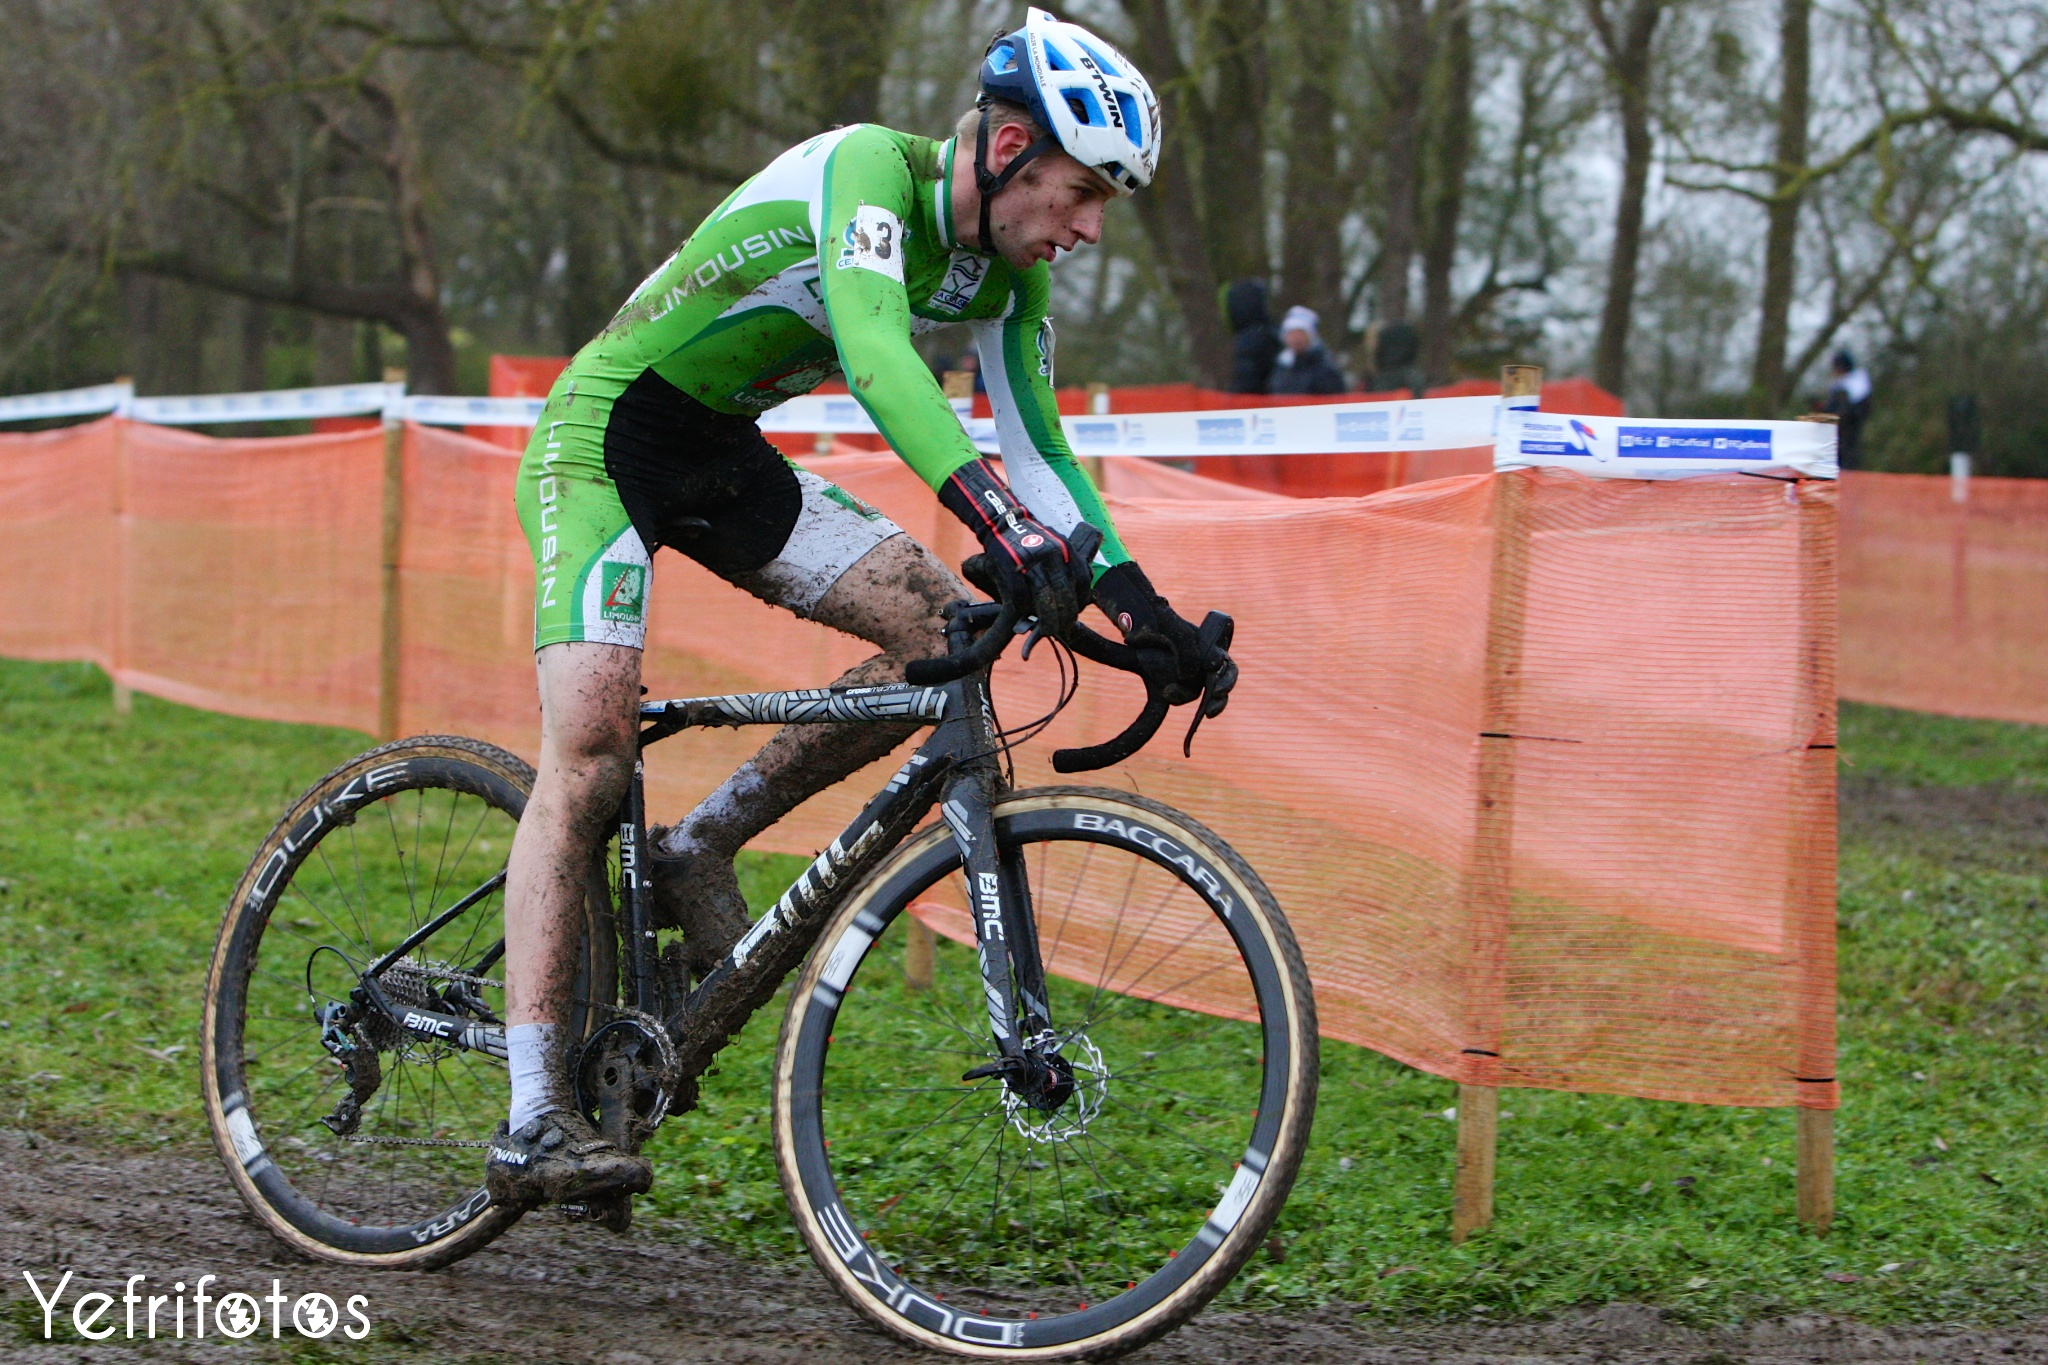 Benjamin Rivet - Btwin - Coupe de France Cyclocross Jablines